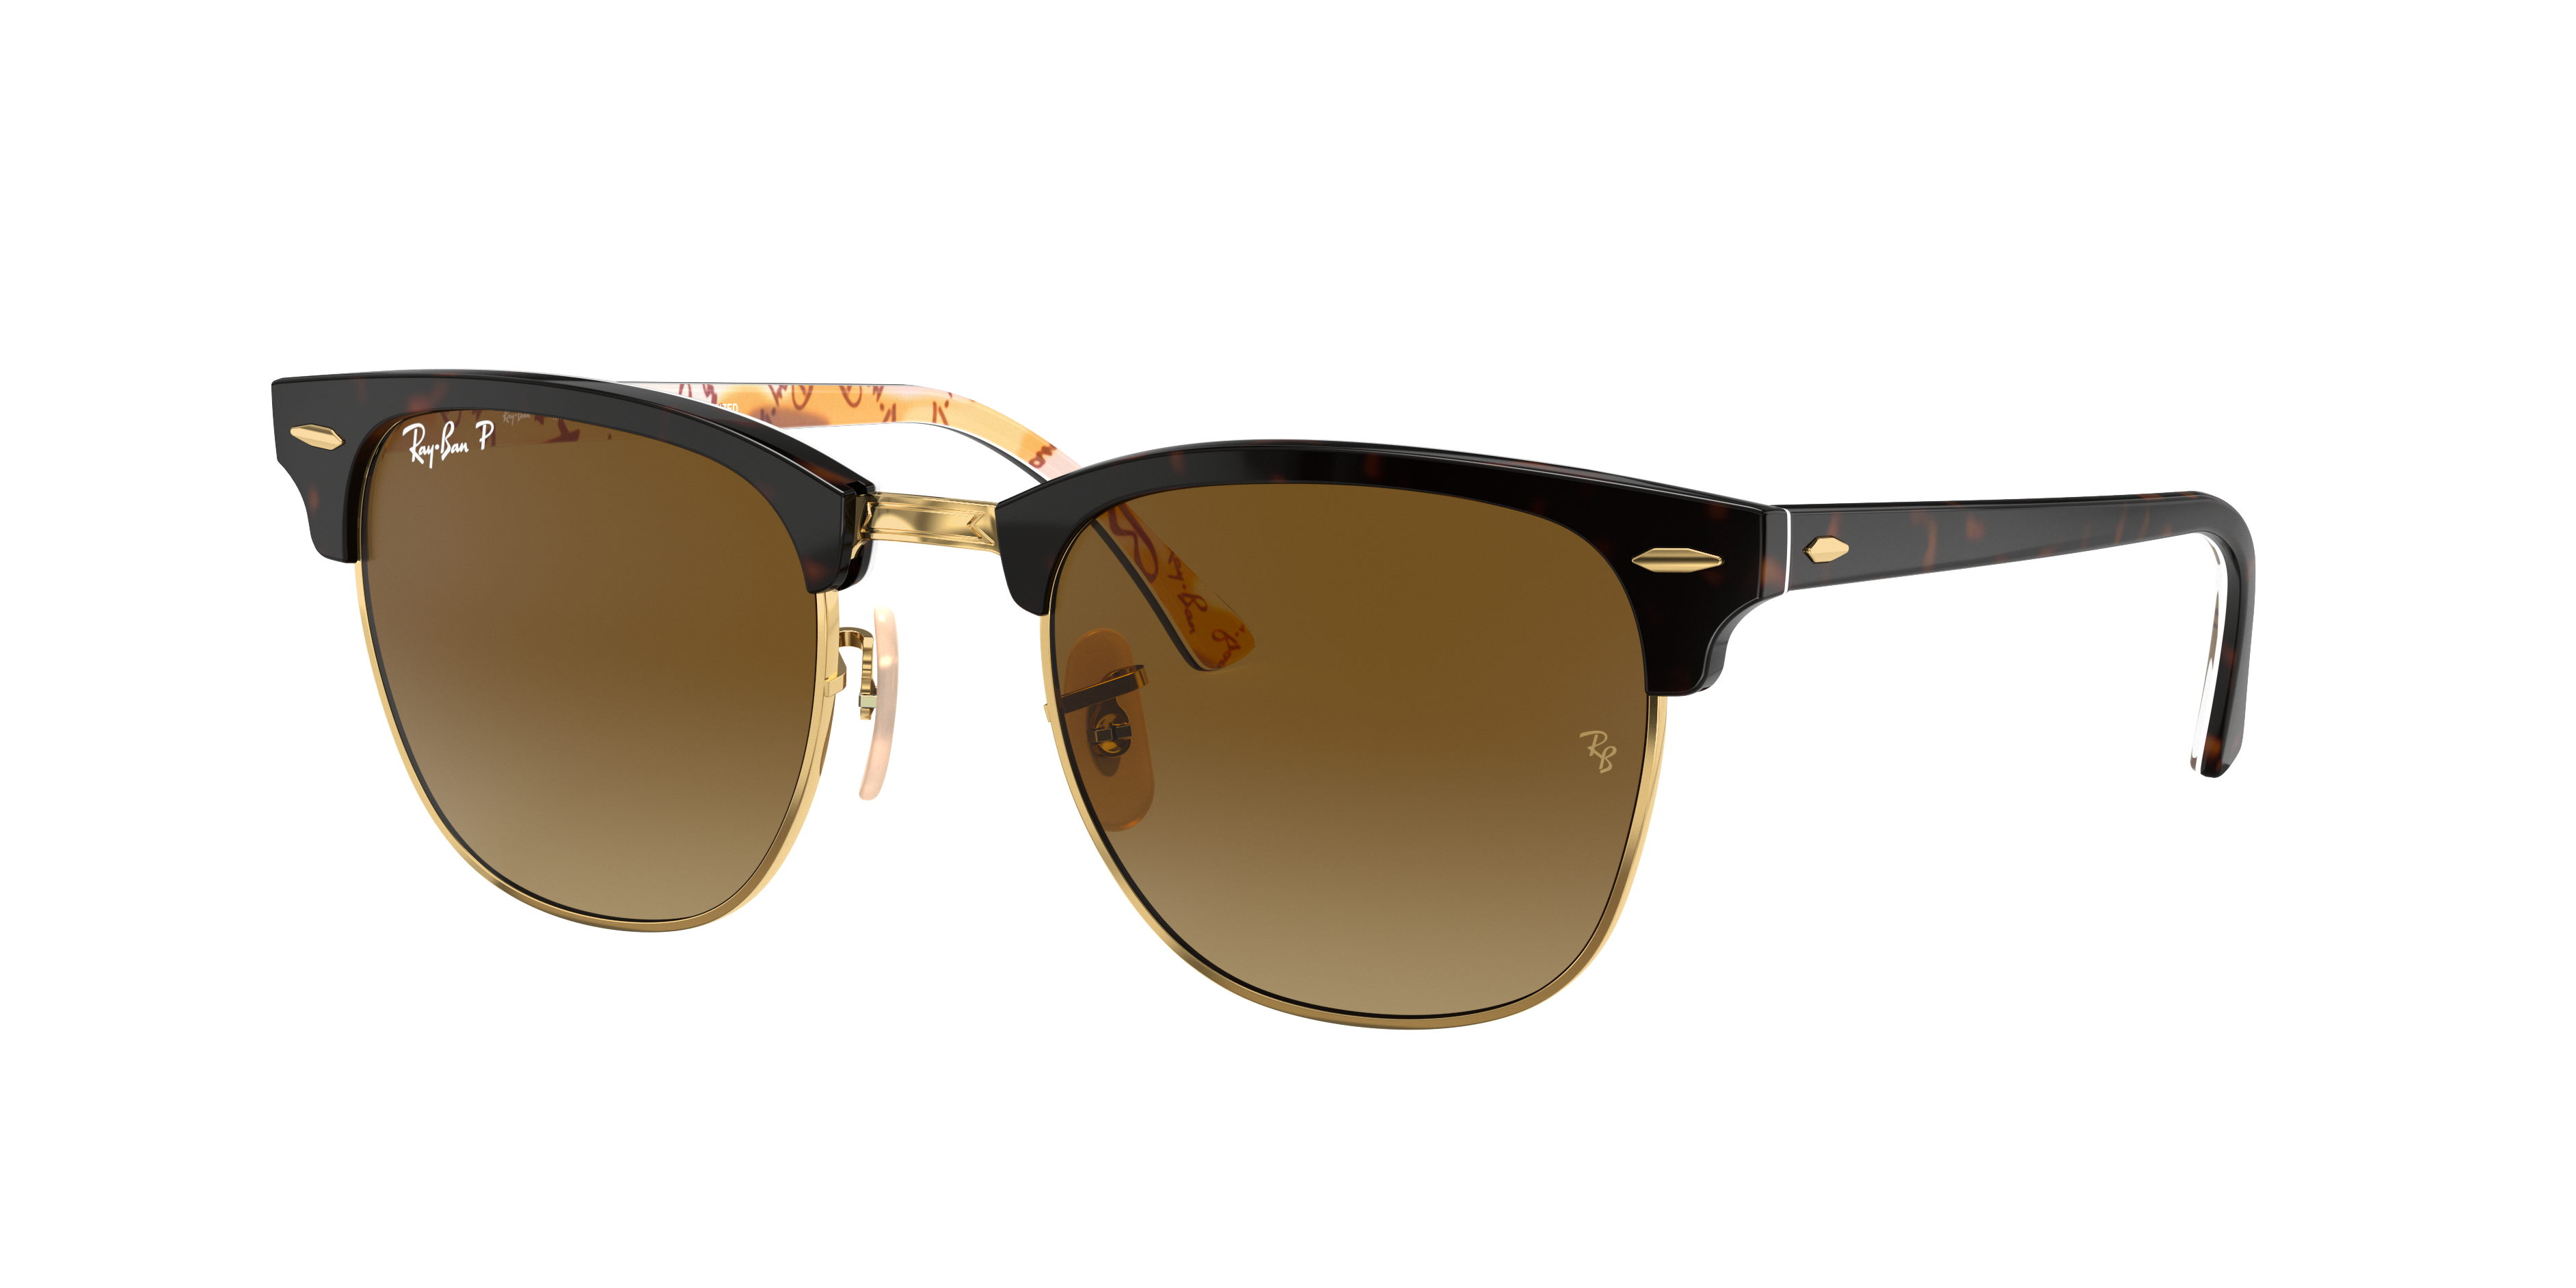 Ray-Ban Clubmaster @collection Tortoise, Polarized Brown Lenses - RB3016